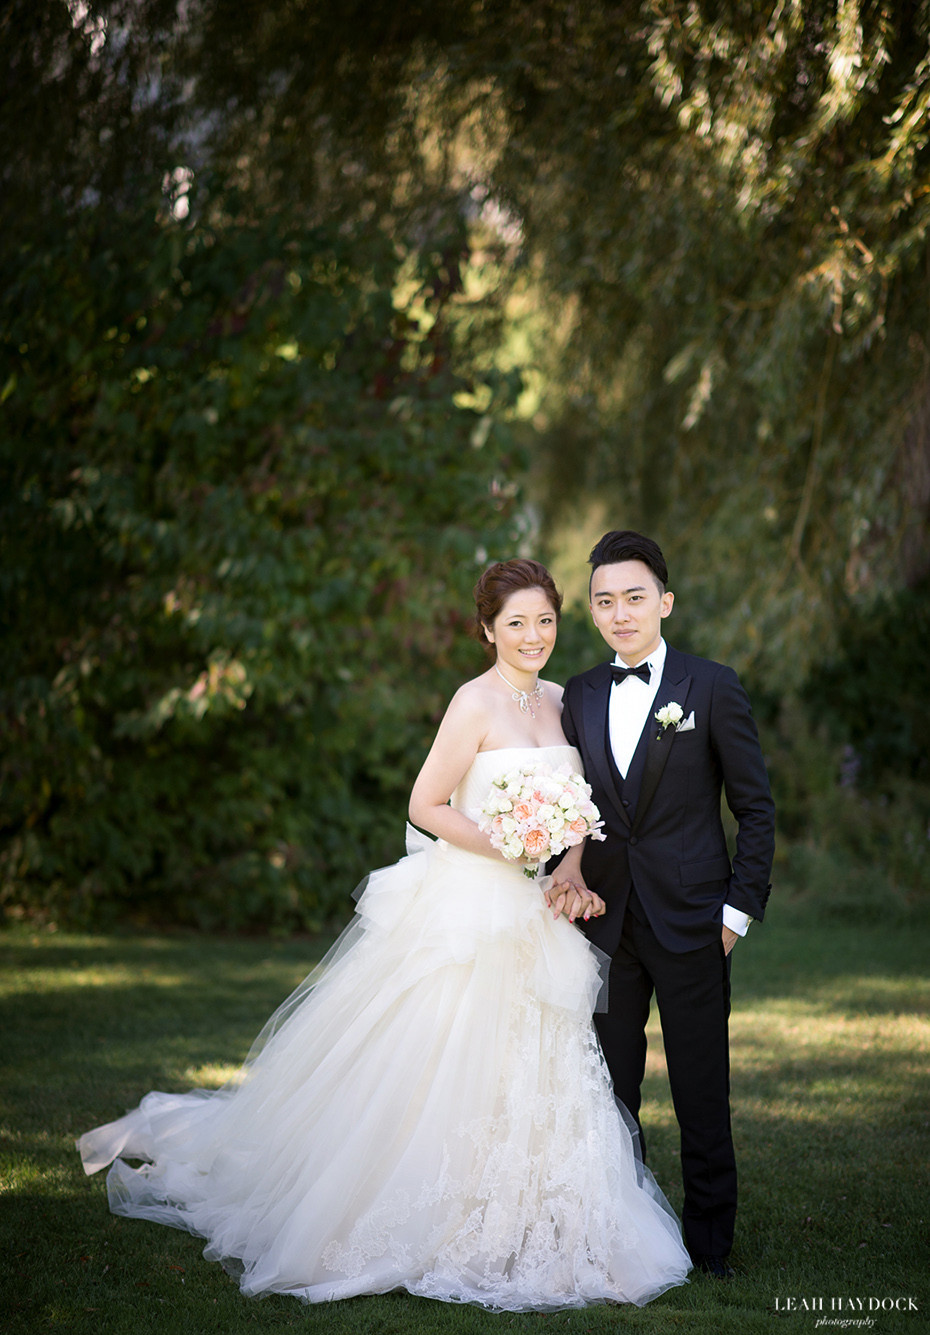 Bride in Vera Wang Wedding Dress standing with Groom